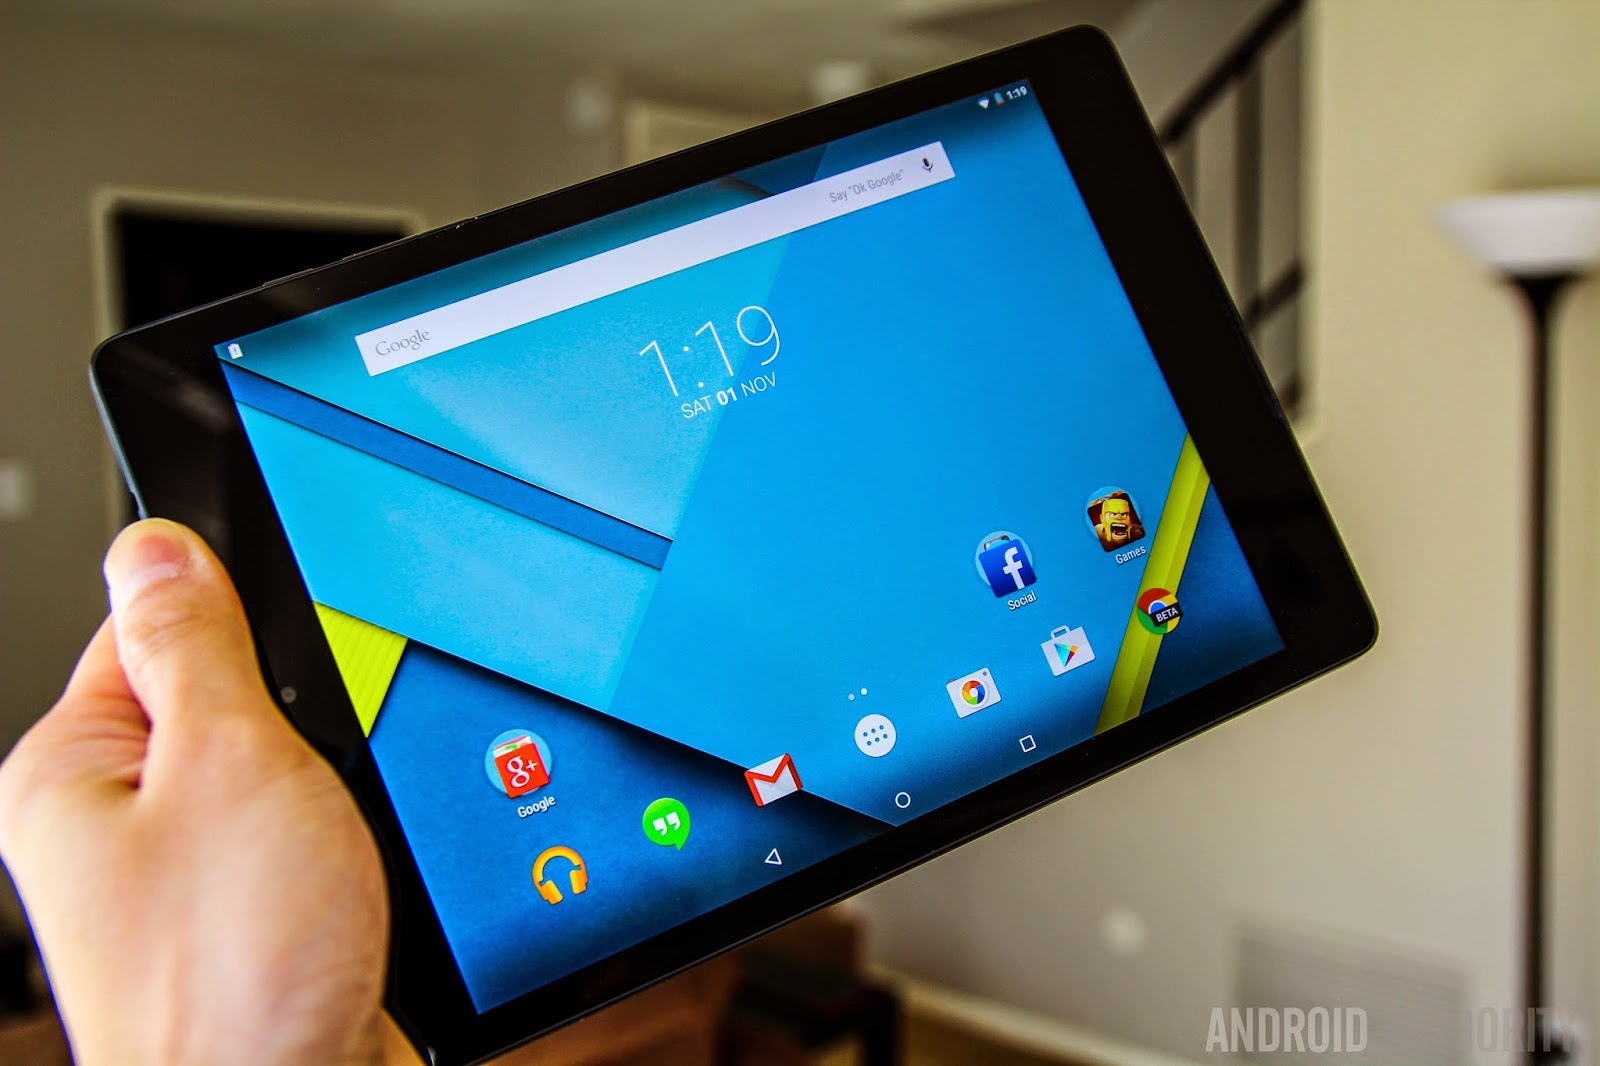 Nexus9 Android tablet